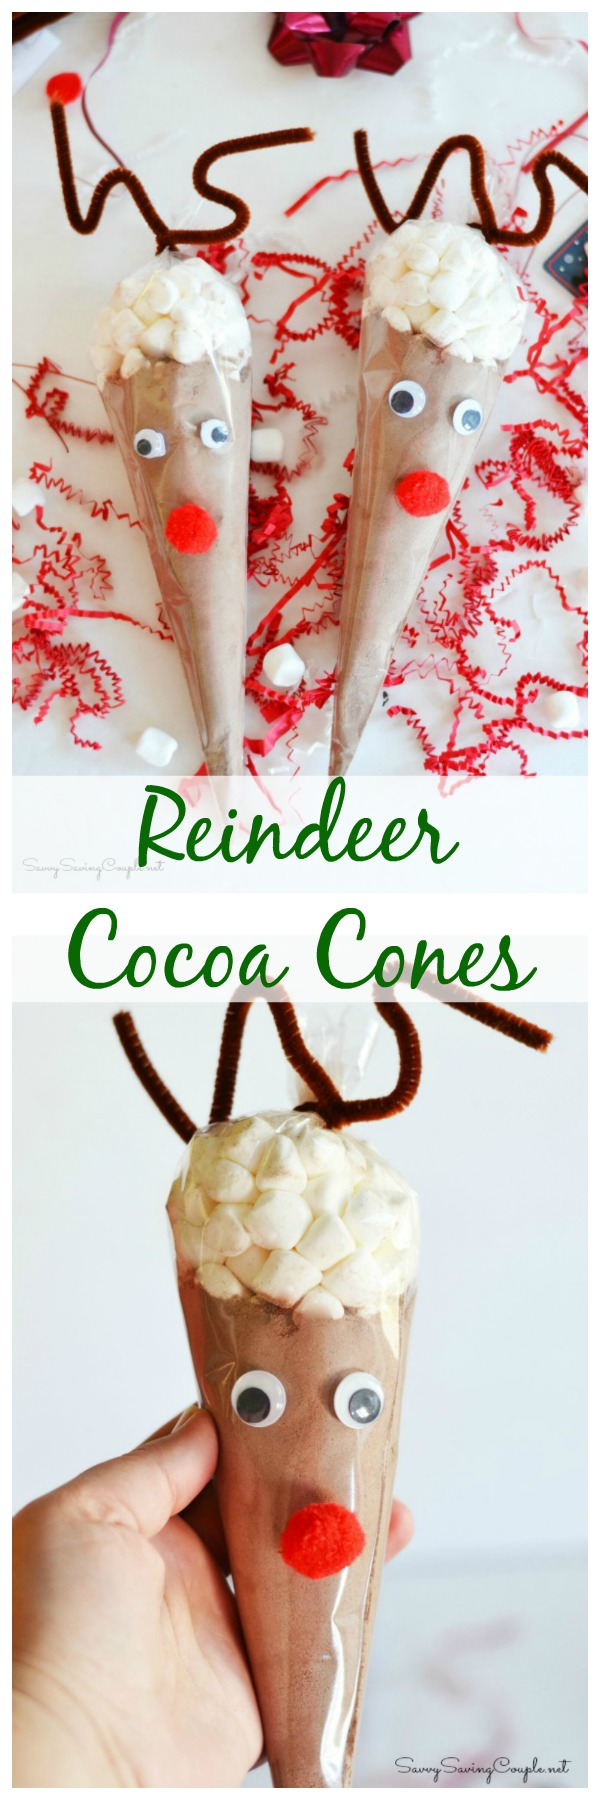 Reindeer Hot Cocoa Cones make the cutest Christmas edible craft! Get this reindeer hot chocolate christmas DIY today!